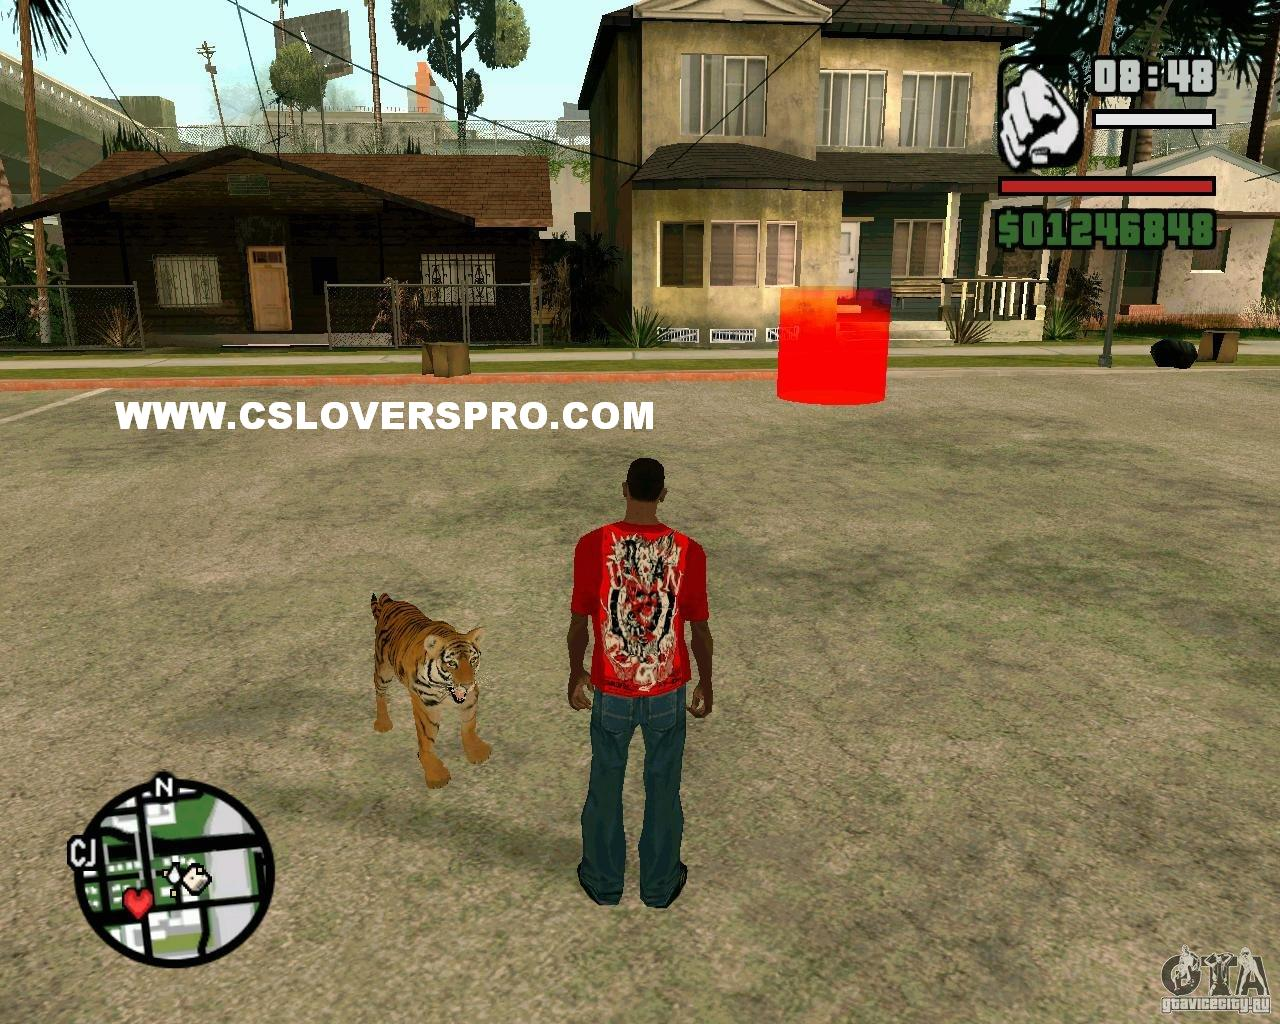 gta 1 free download for pc windows 7